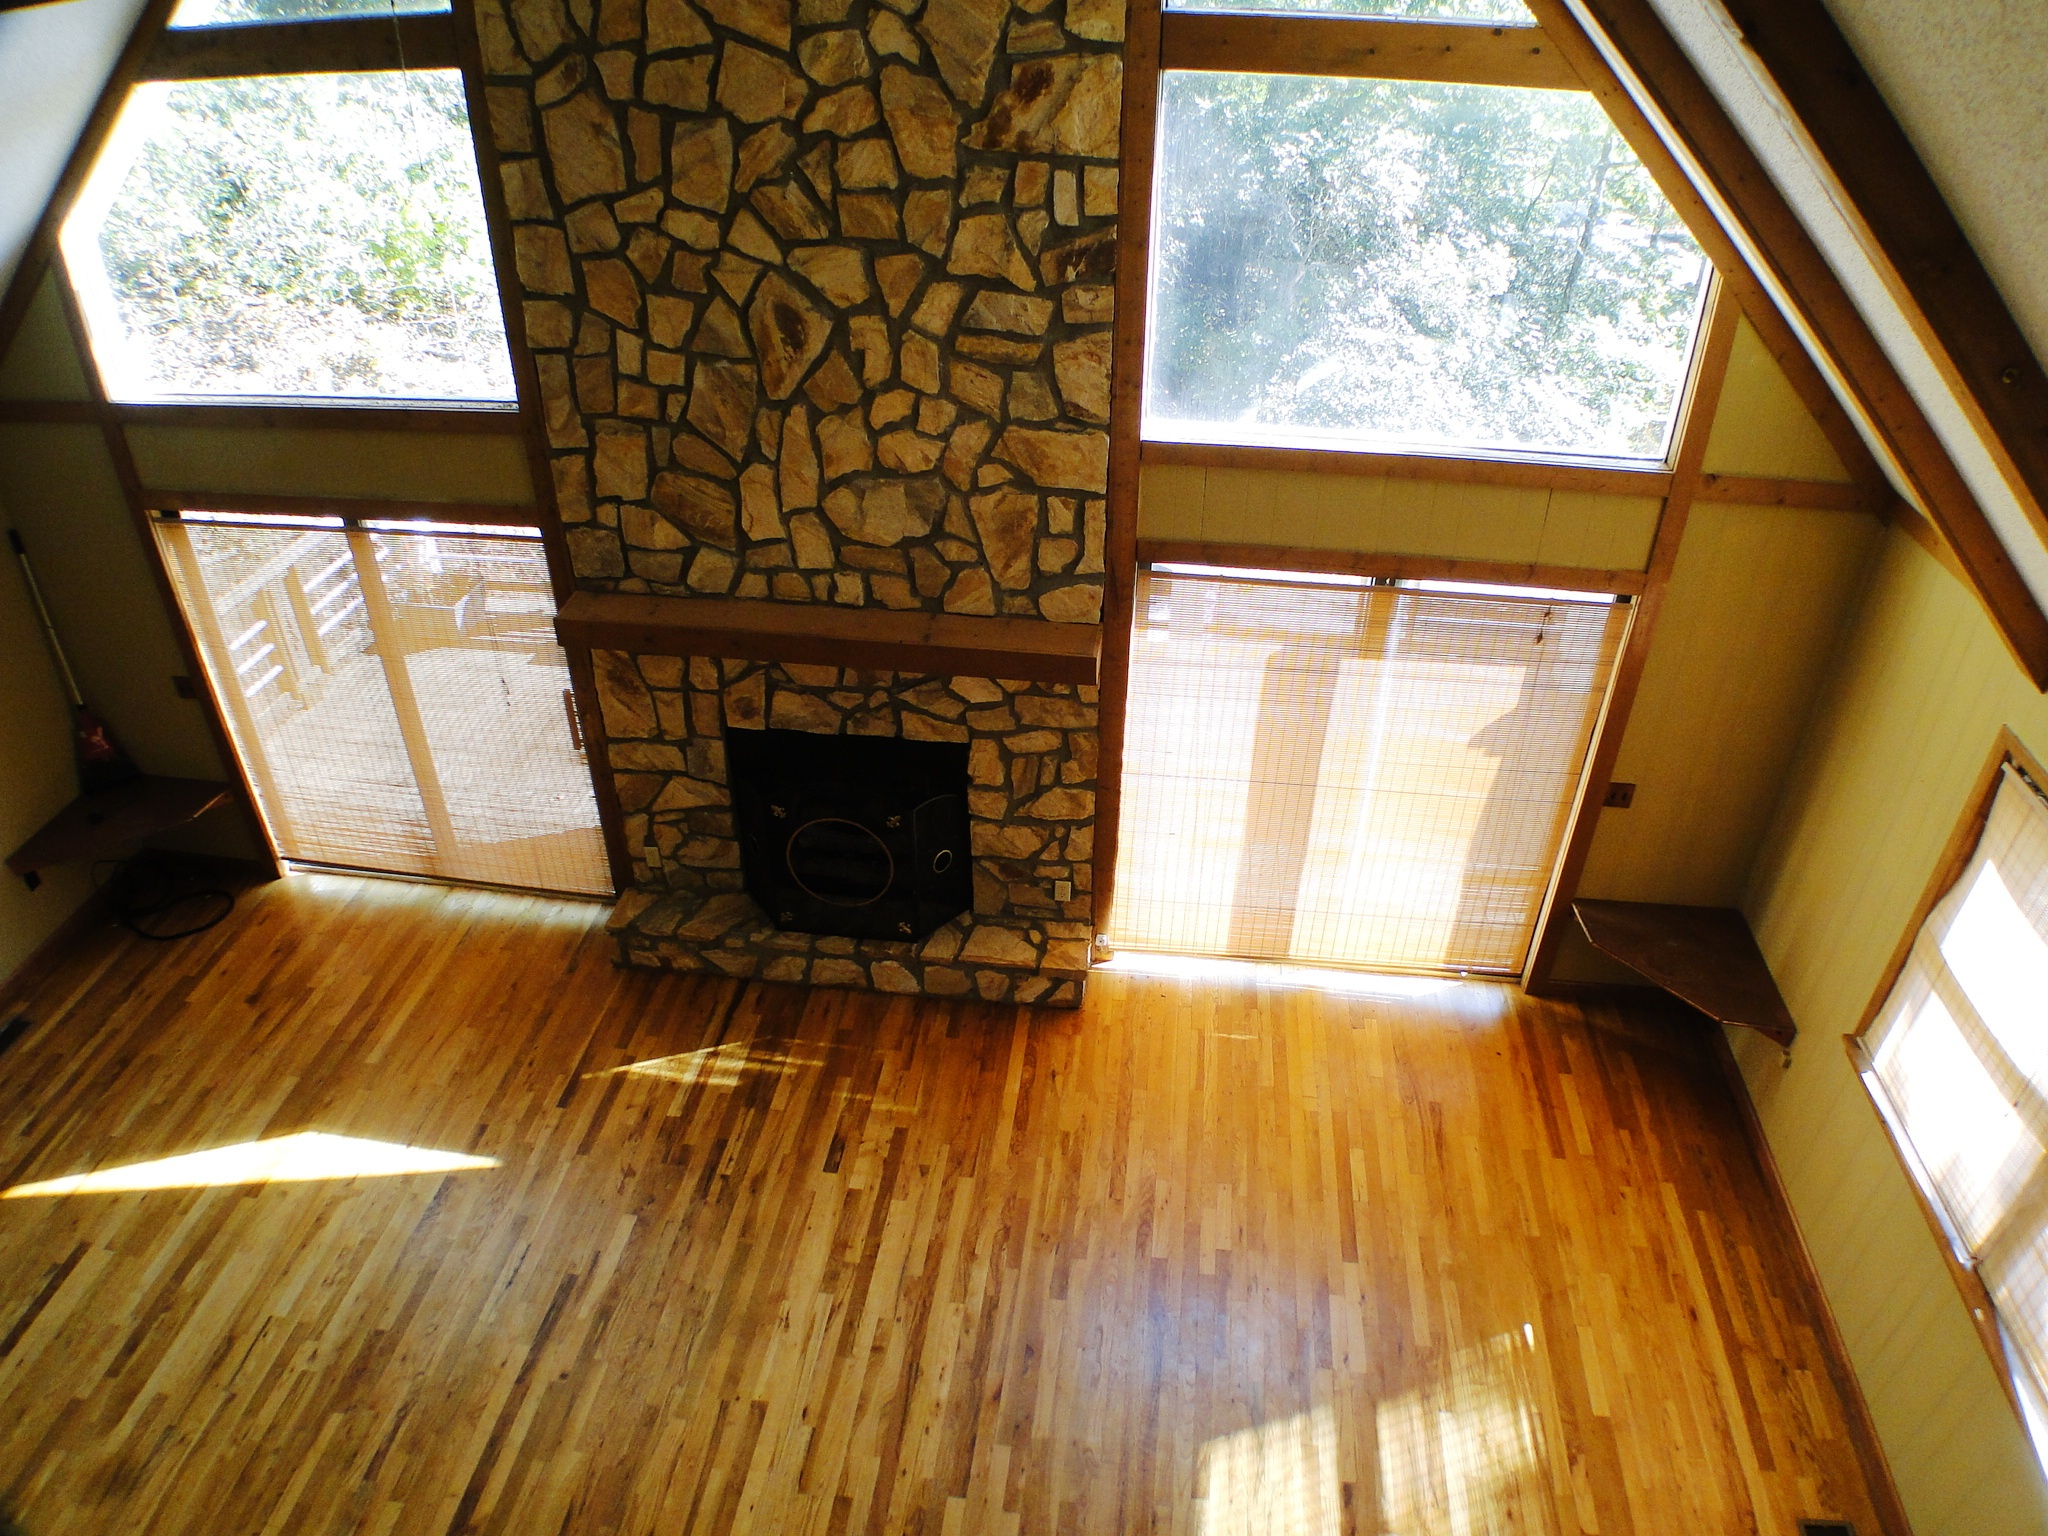 625 Woodland Heights Drive Franklin NC, Franklin NC Real Estate, Western NC Real Estate for Sale, homes for sale in franklin nc